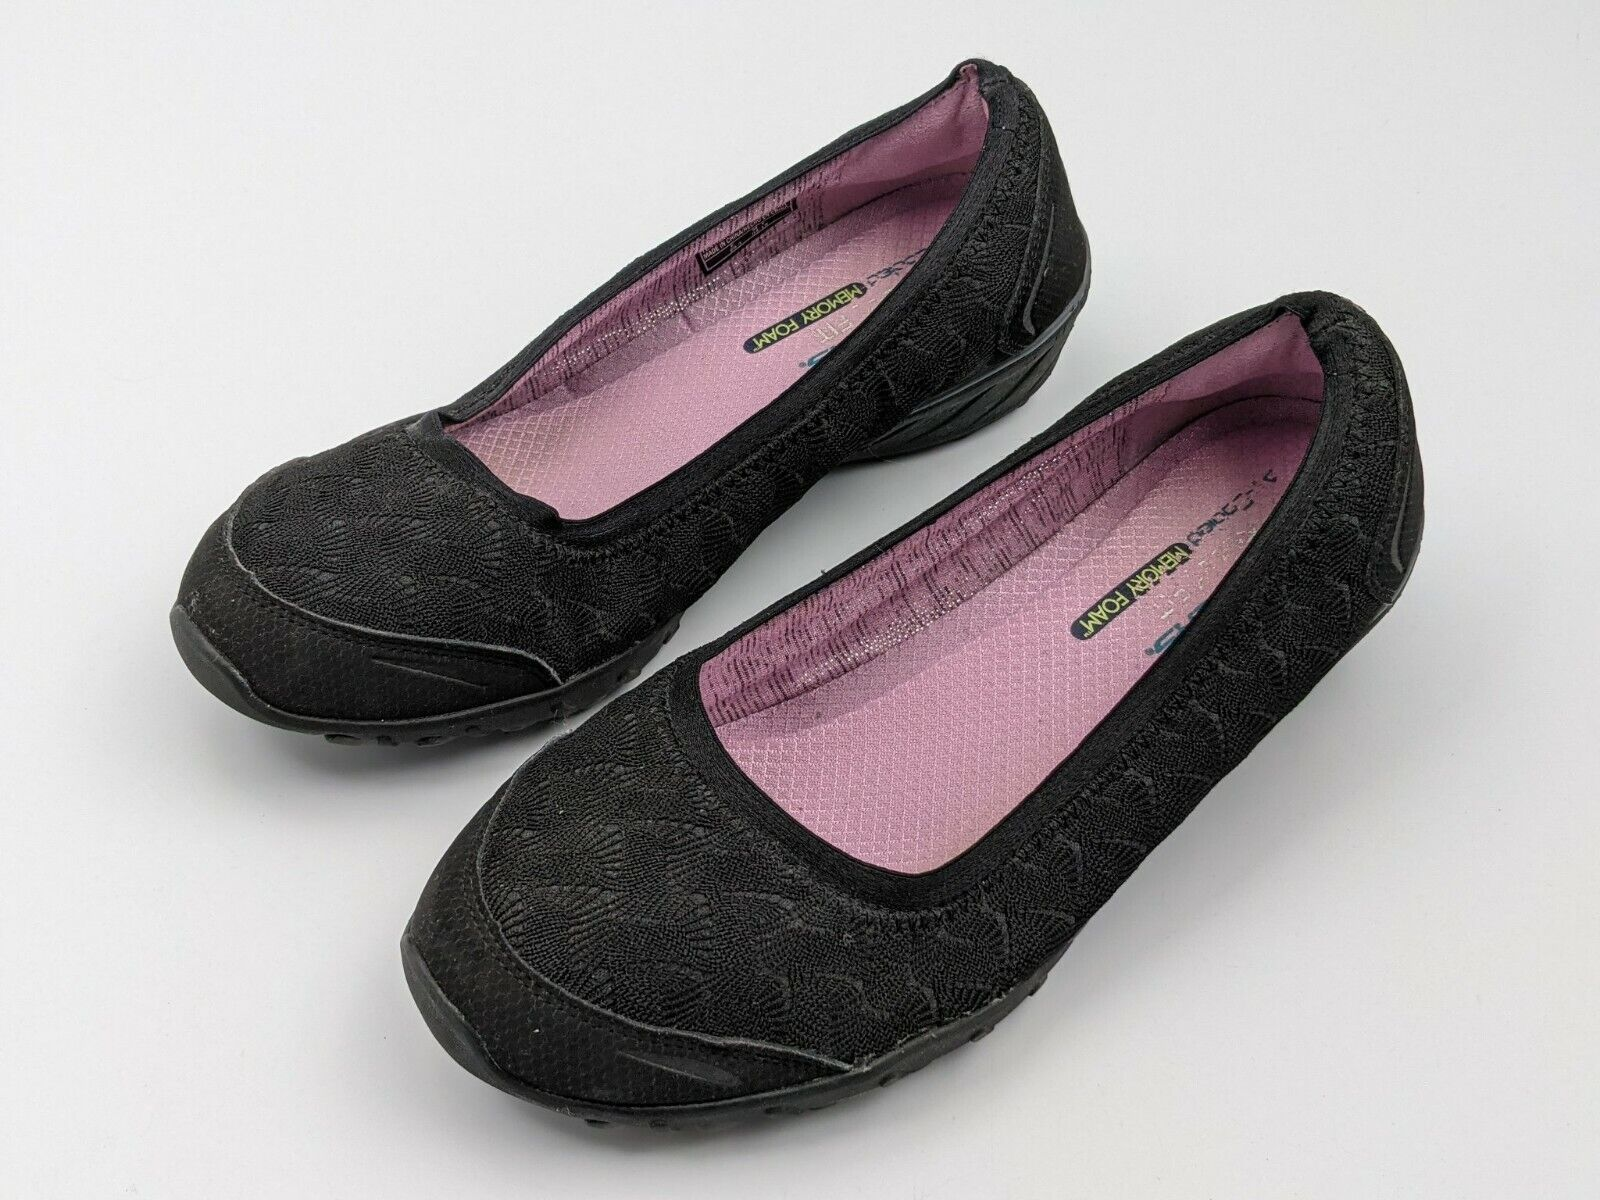 Women's Black Lace Overlay Air Cooled Memory Foam Skechers Size 9